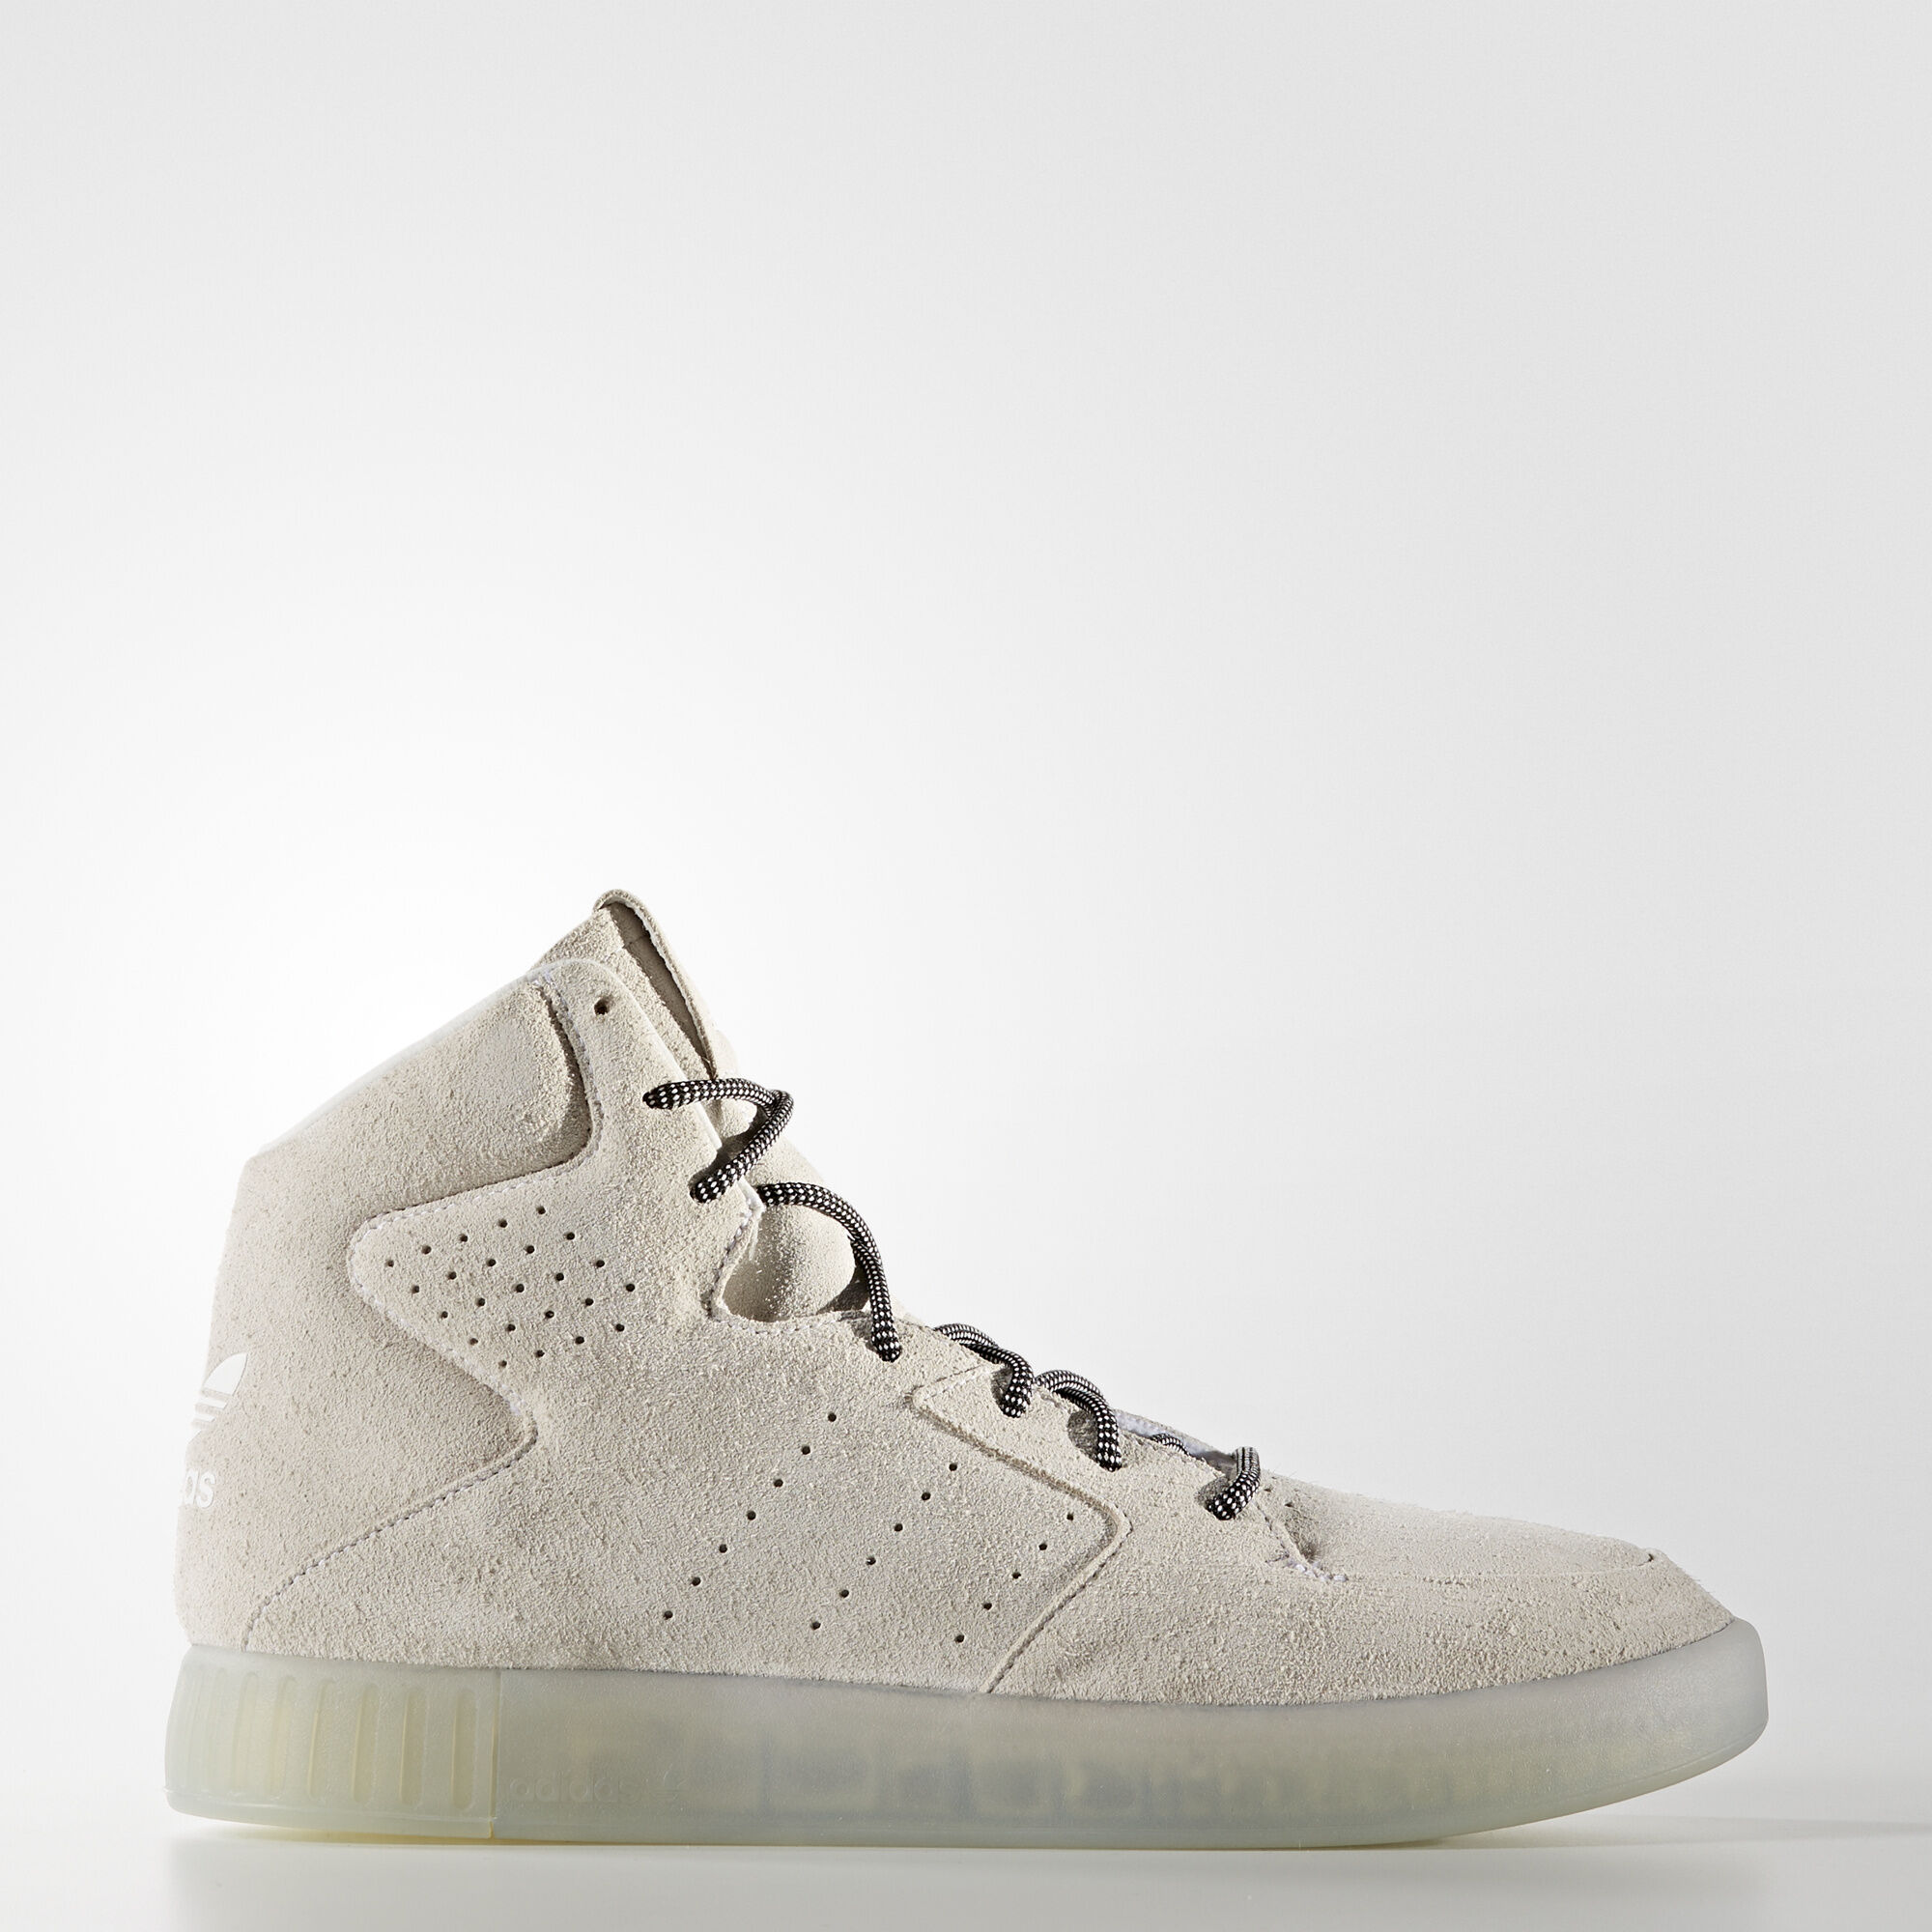 Adidas Tubular Invader Shoes